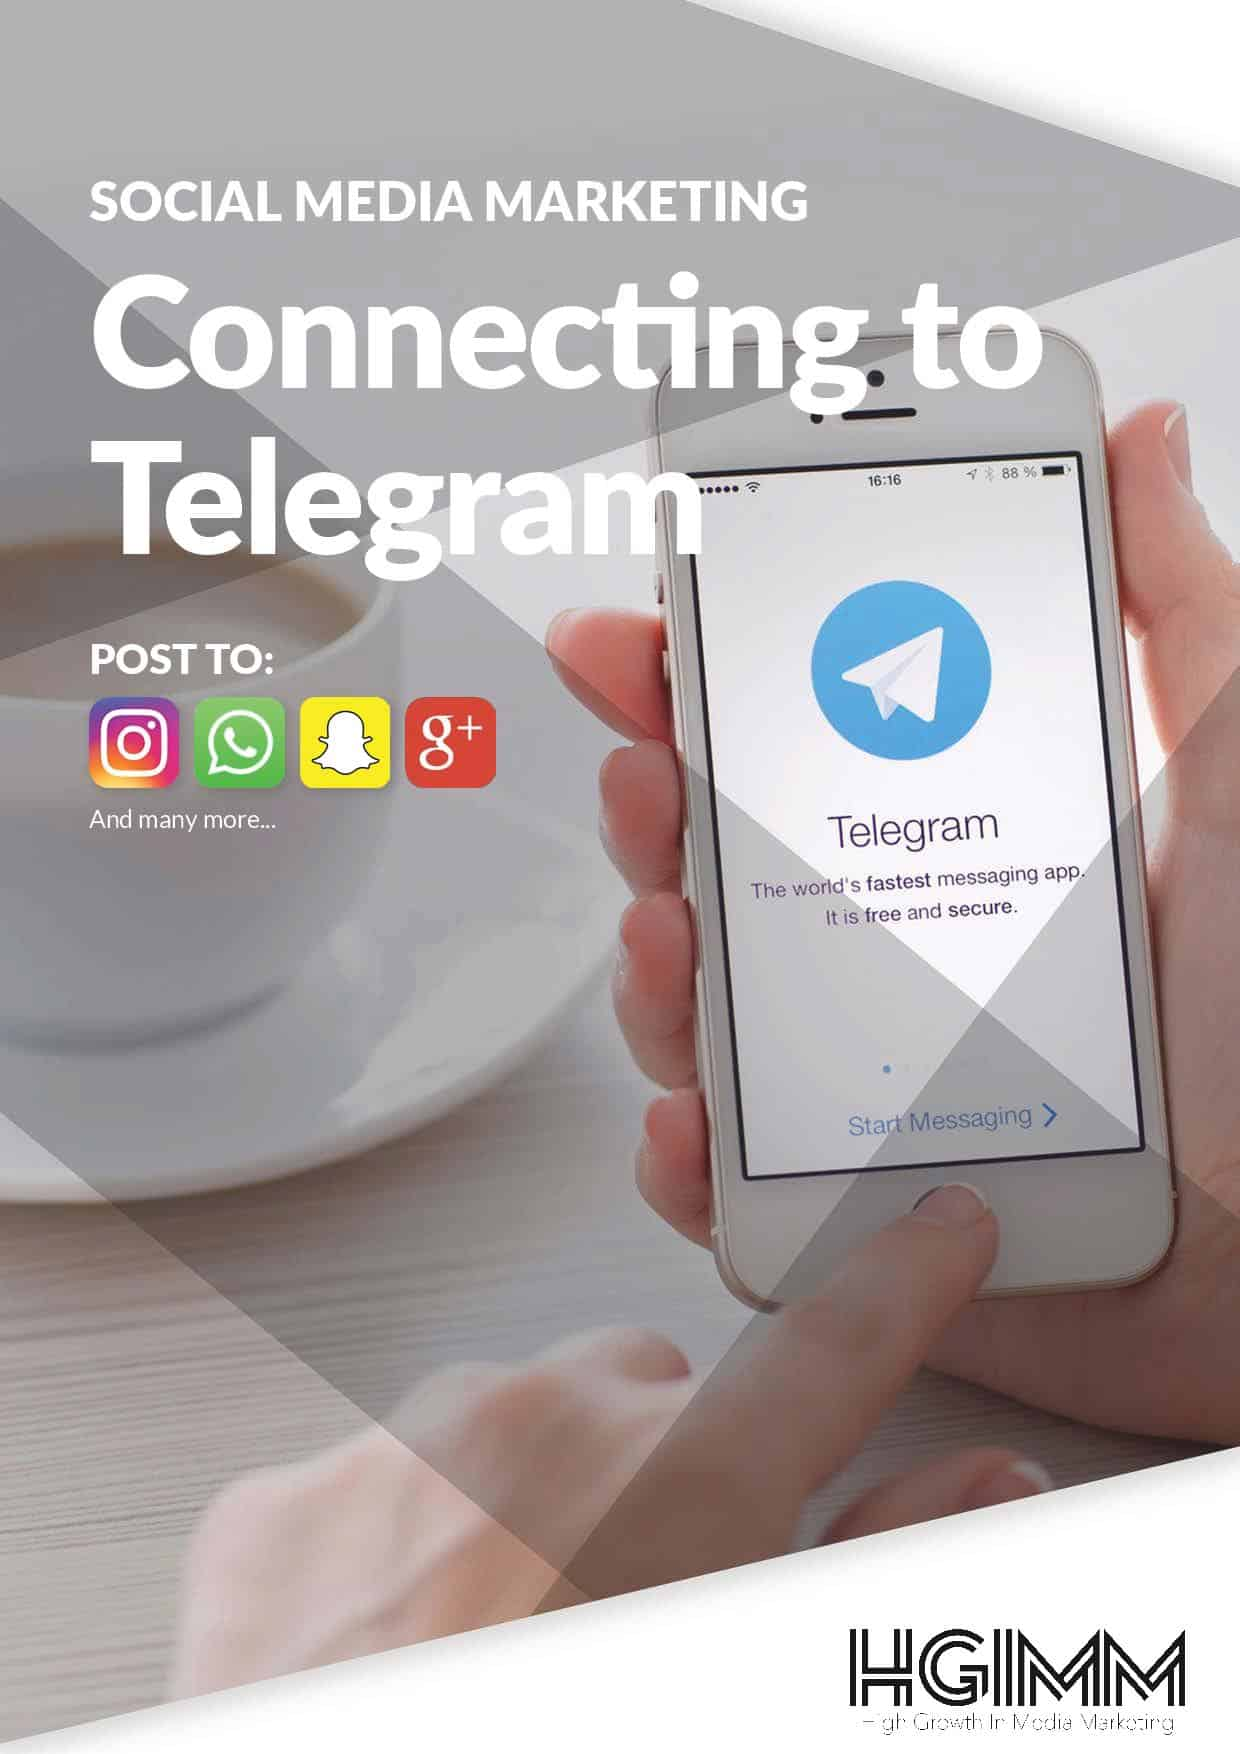 connecting_to_telegram_(1)-page-001 (1)